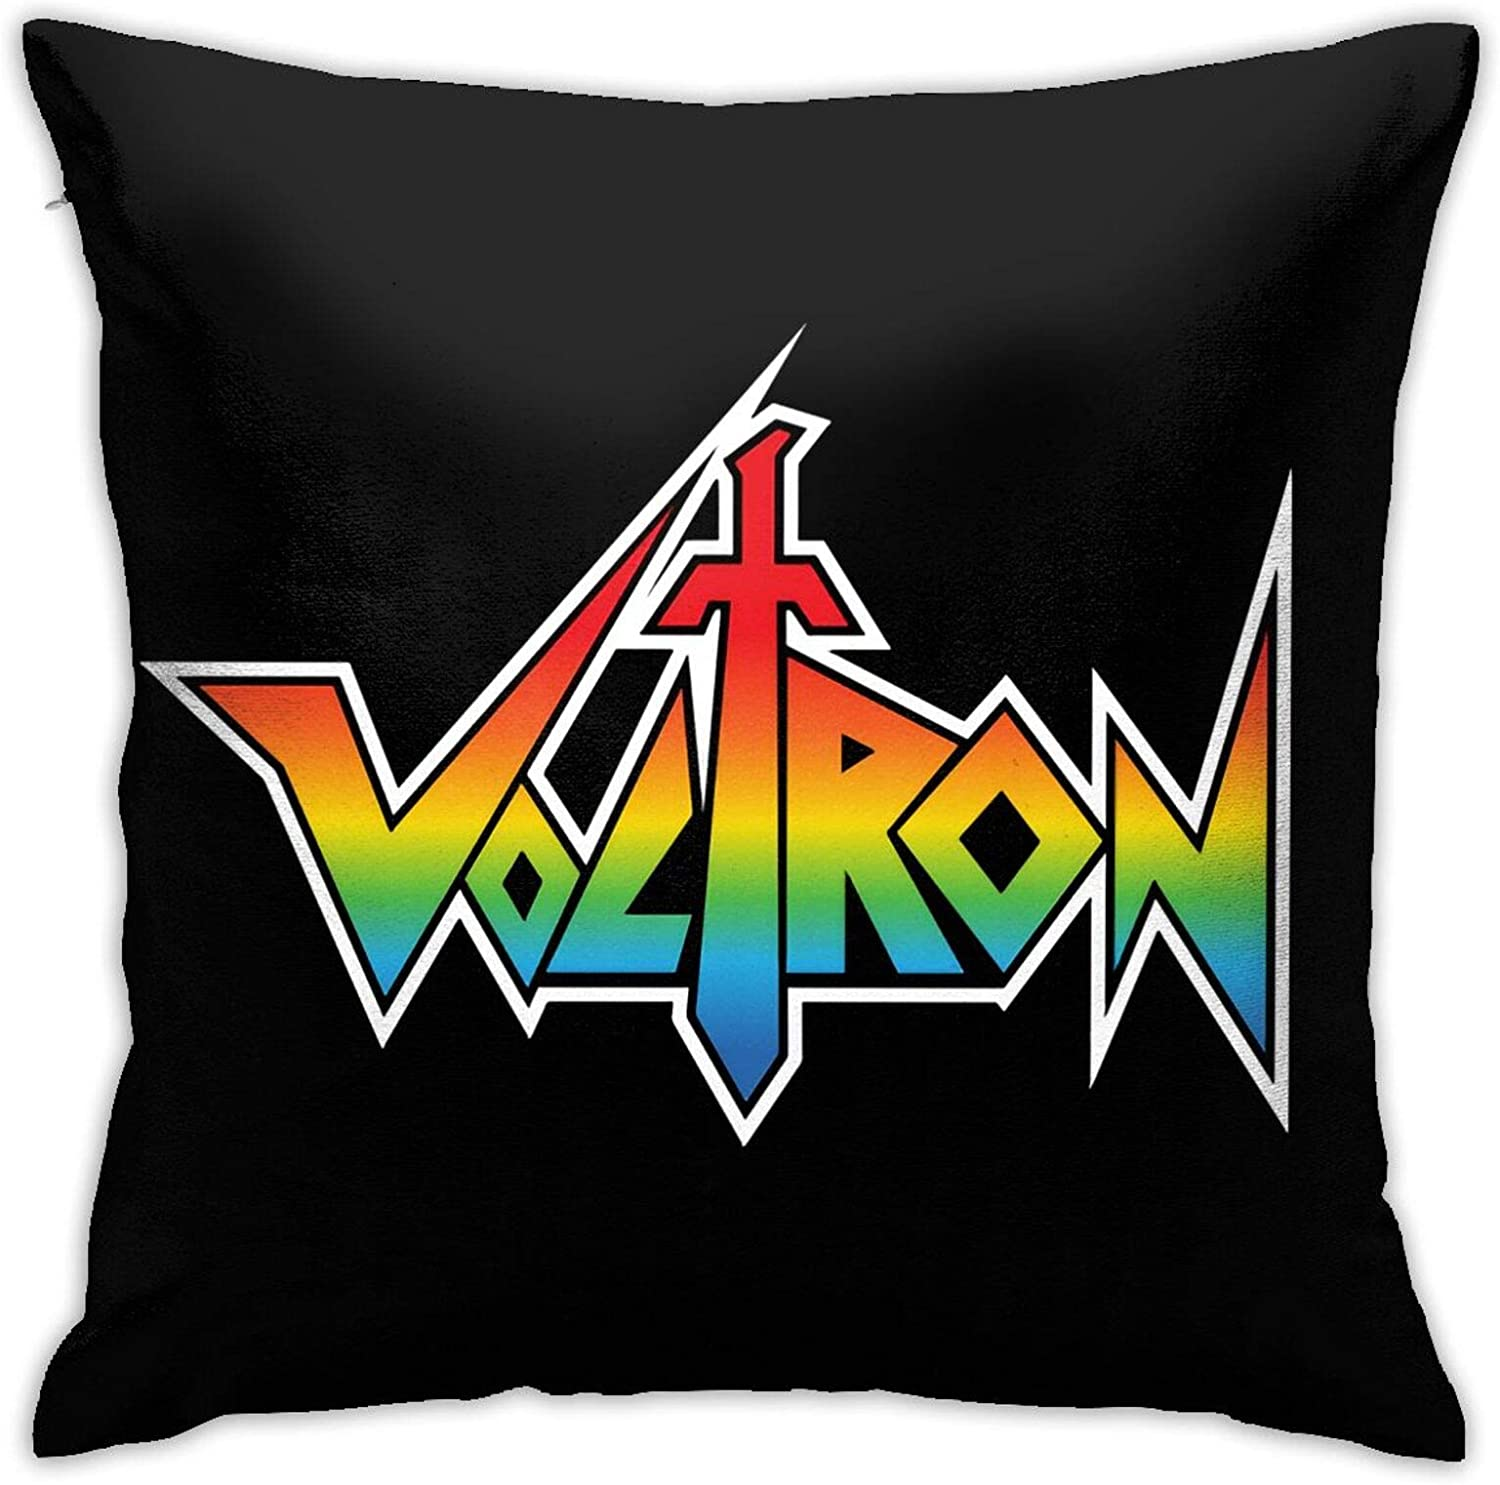 BAIJEN Volt-Ron Defender of The Universe Ii Pillowcase Home Sofa Bed Decorated with Soft and Comfortable Washing Pillowcase (1818in)